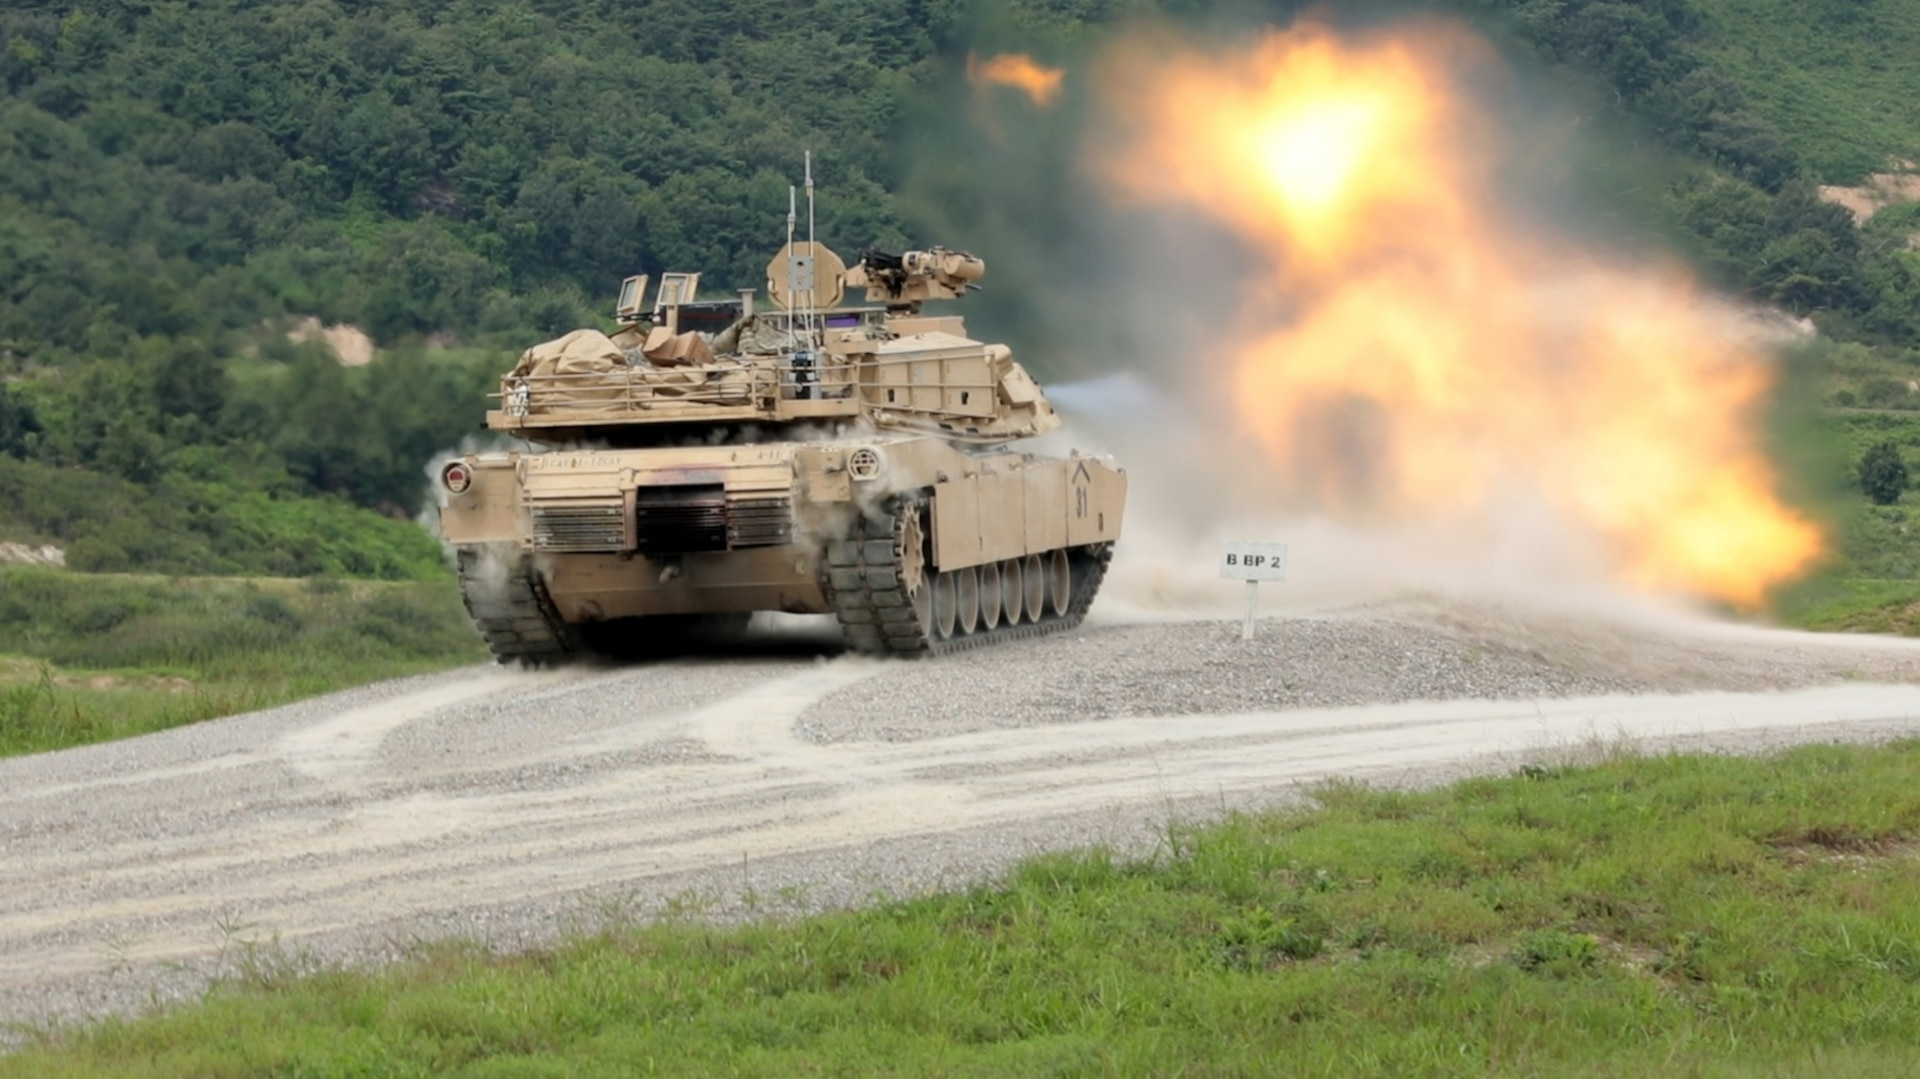 Greywolf Brigade Conducts Complex Combined Breach Training with ROK Army Partners